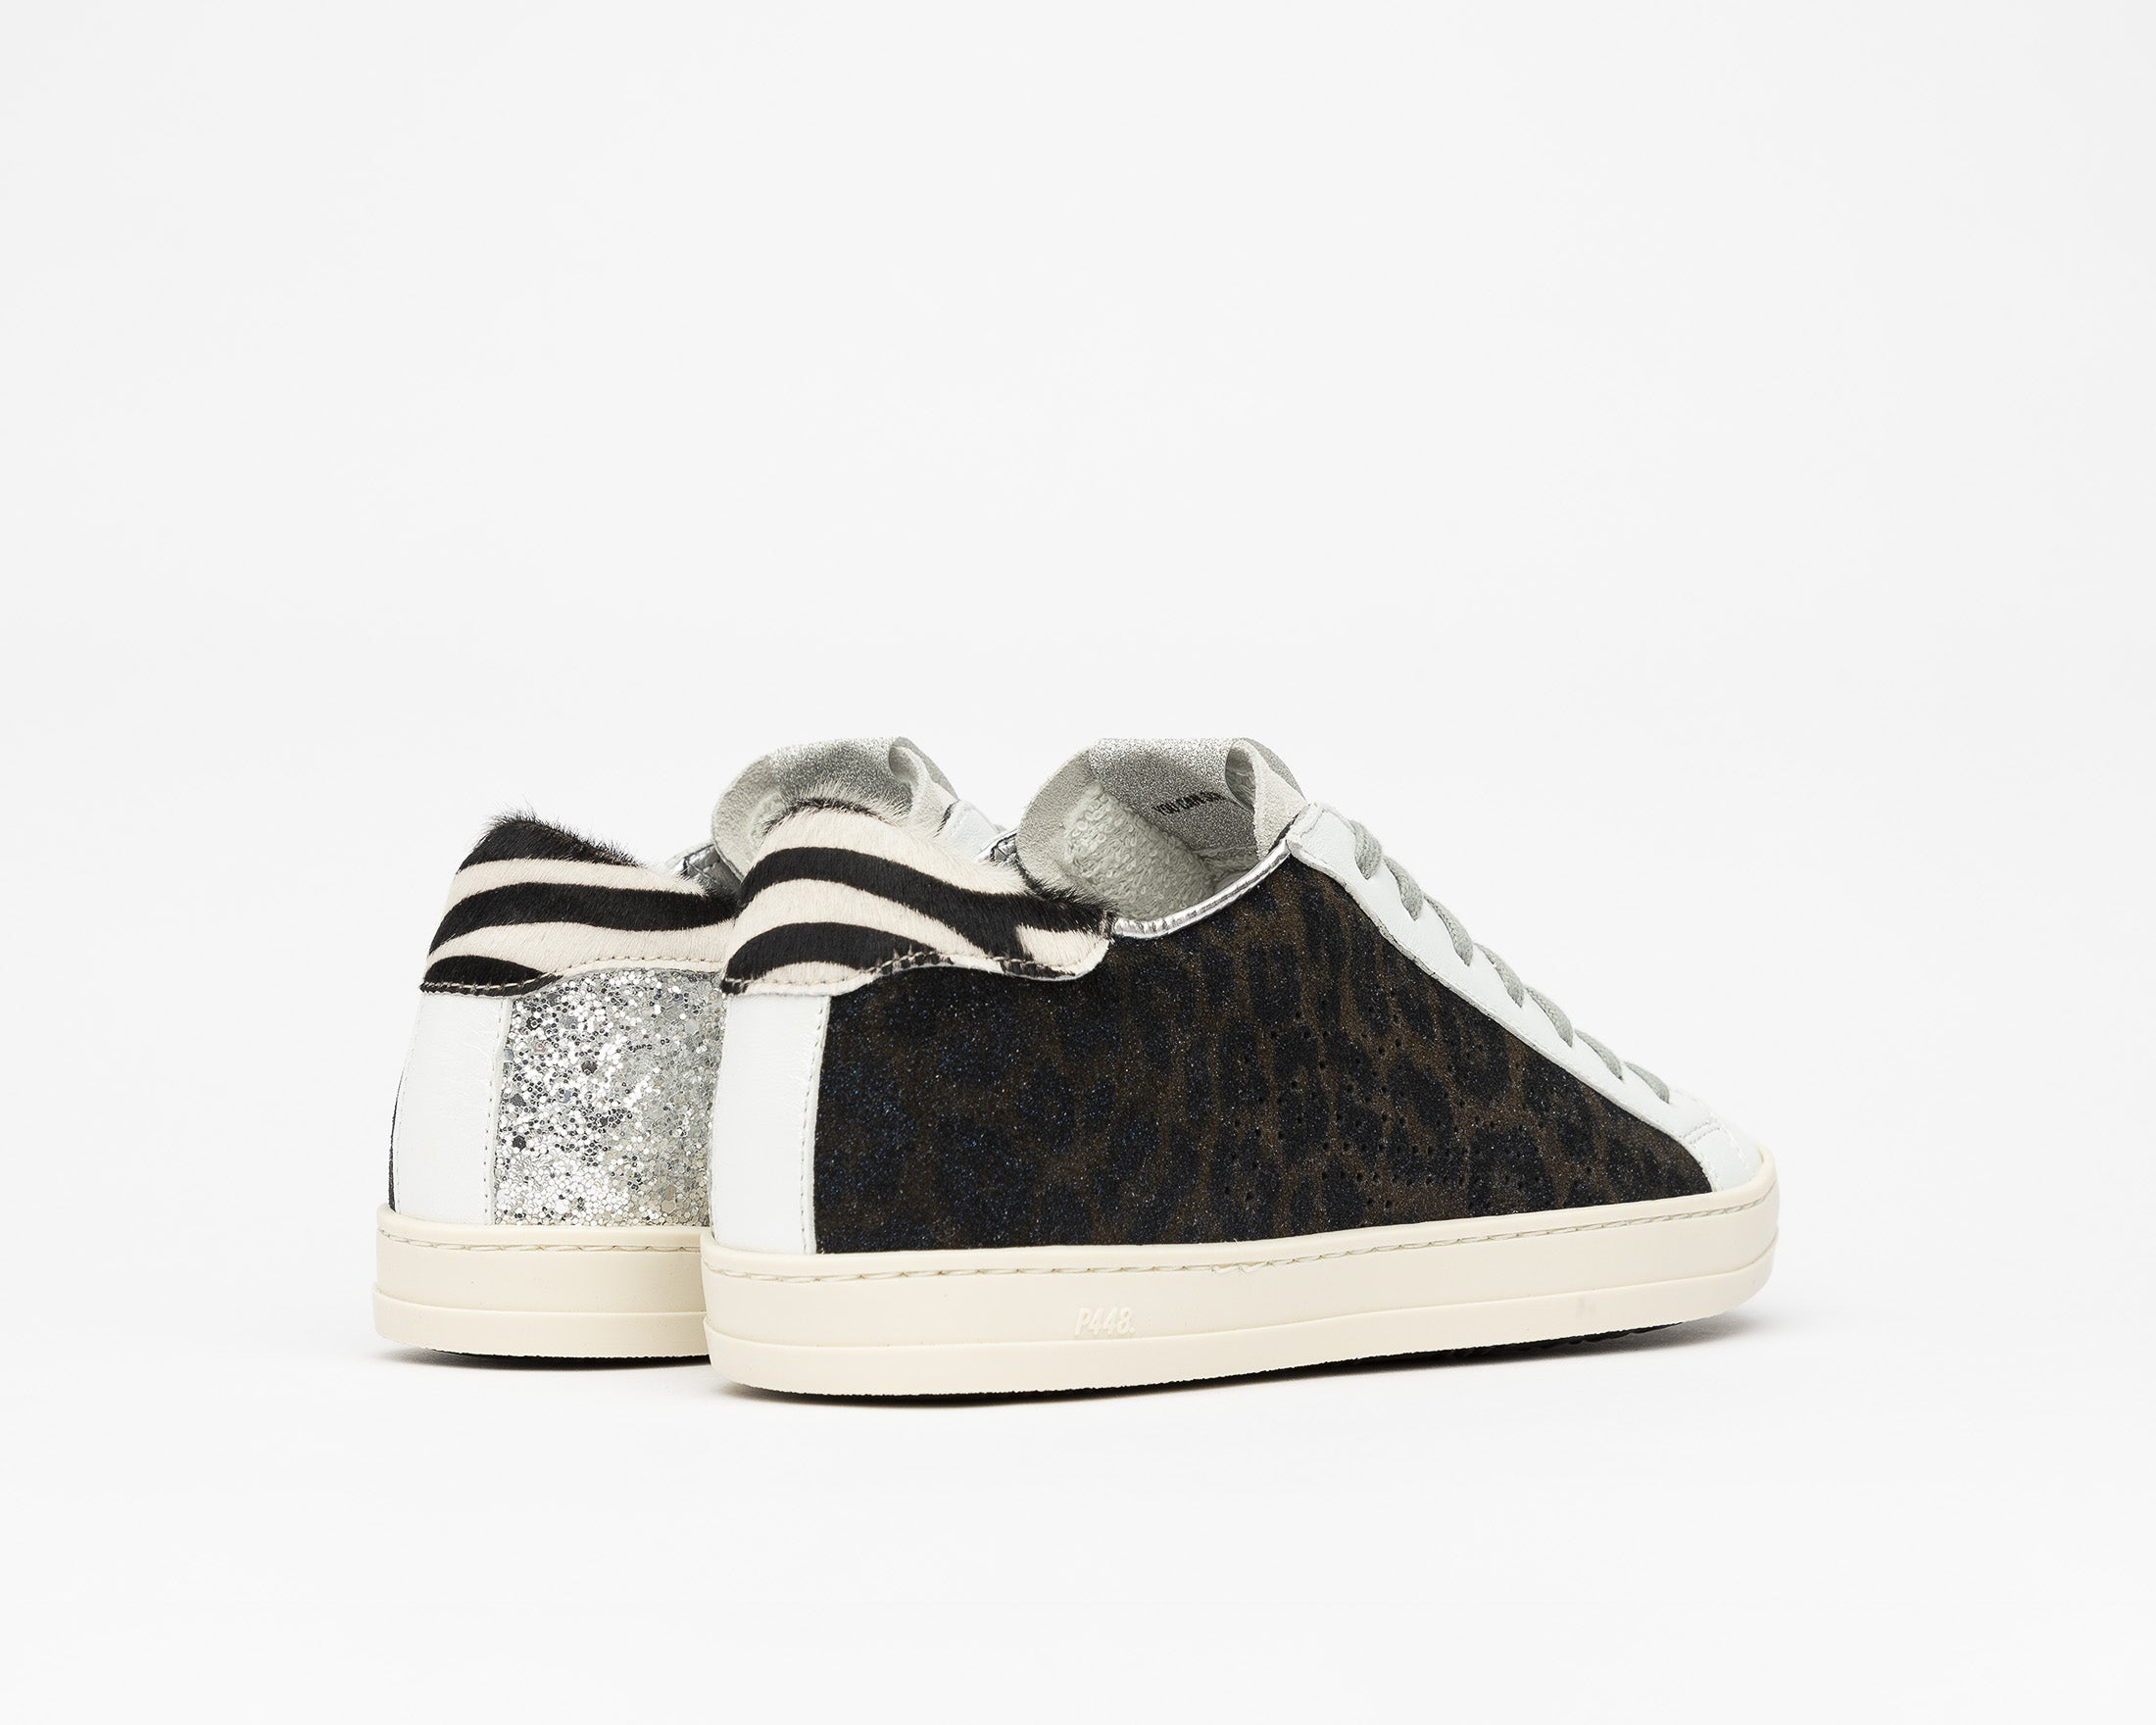 JohnBS Low-Top Sneaker in Silver Glitter - Back